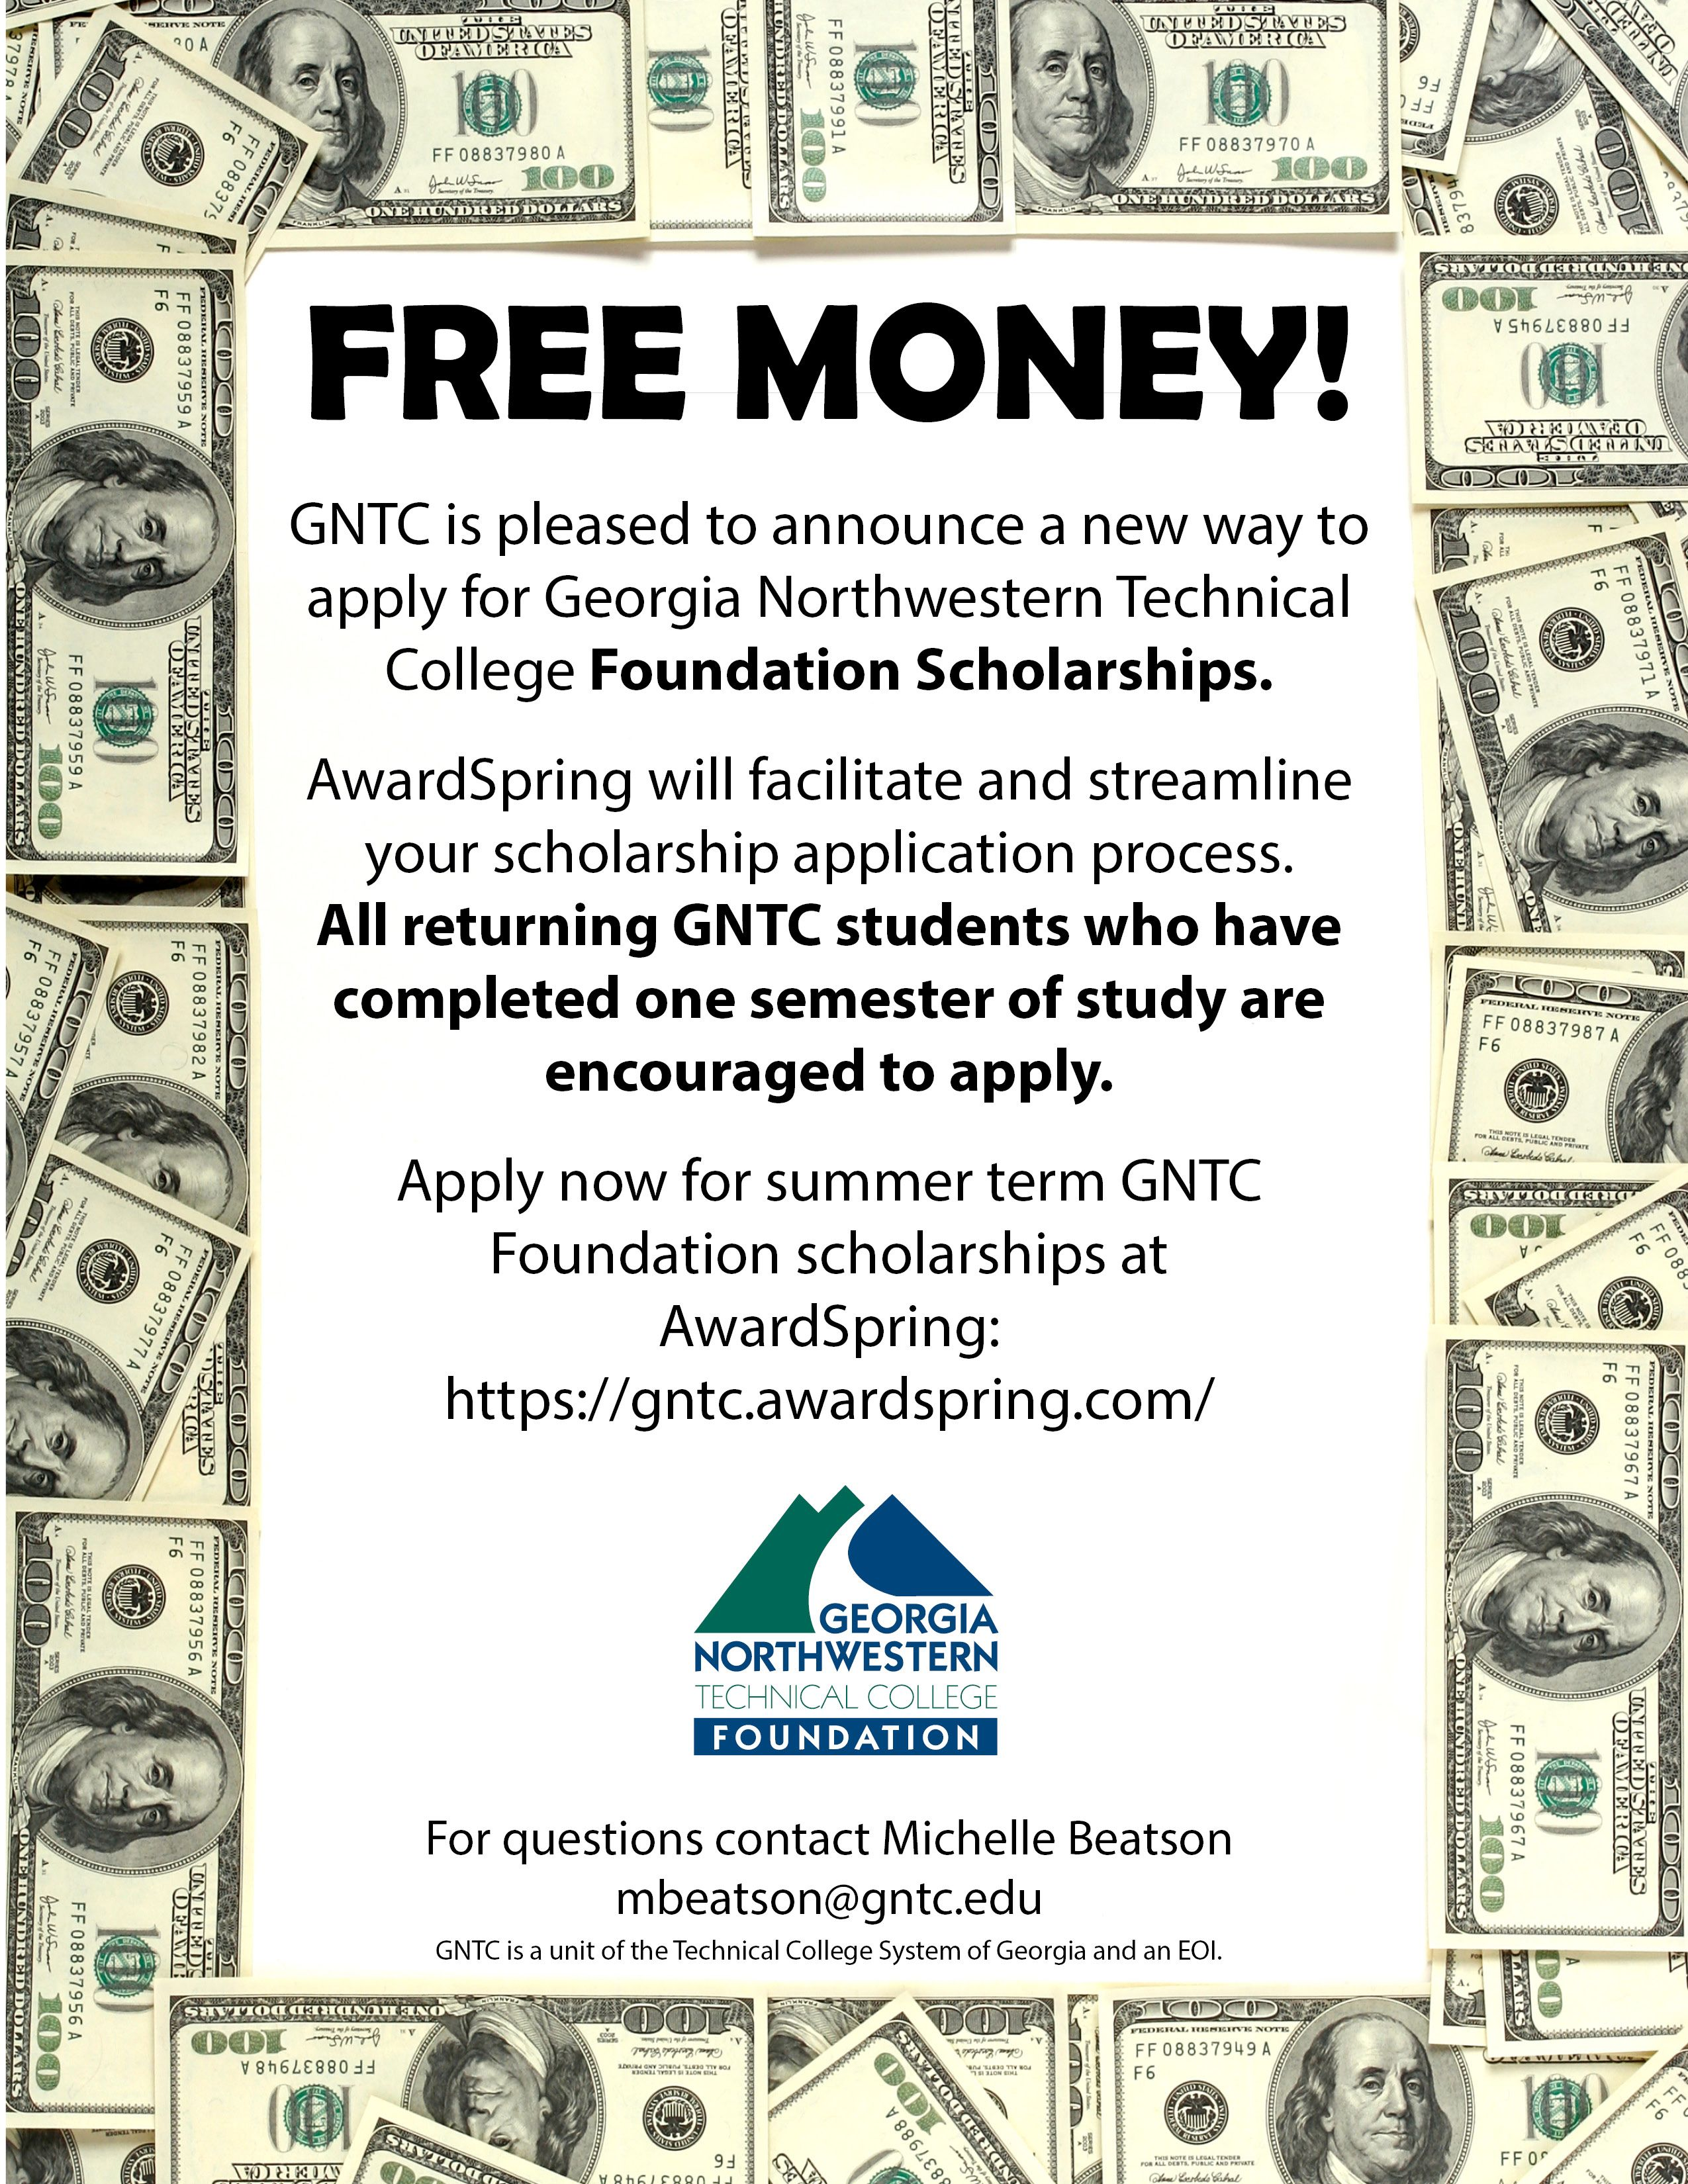 FREE MONEY! GNTC is pleased to announce a new way to apply